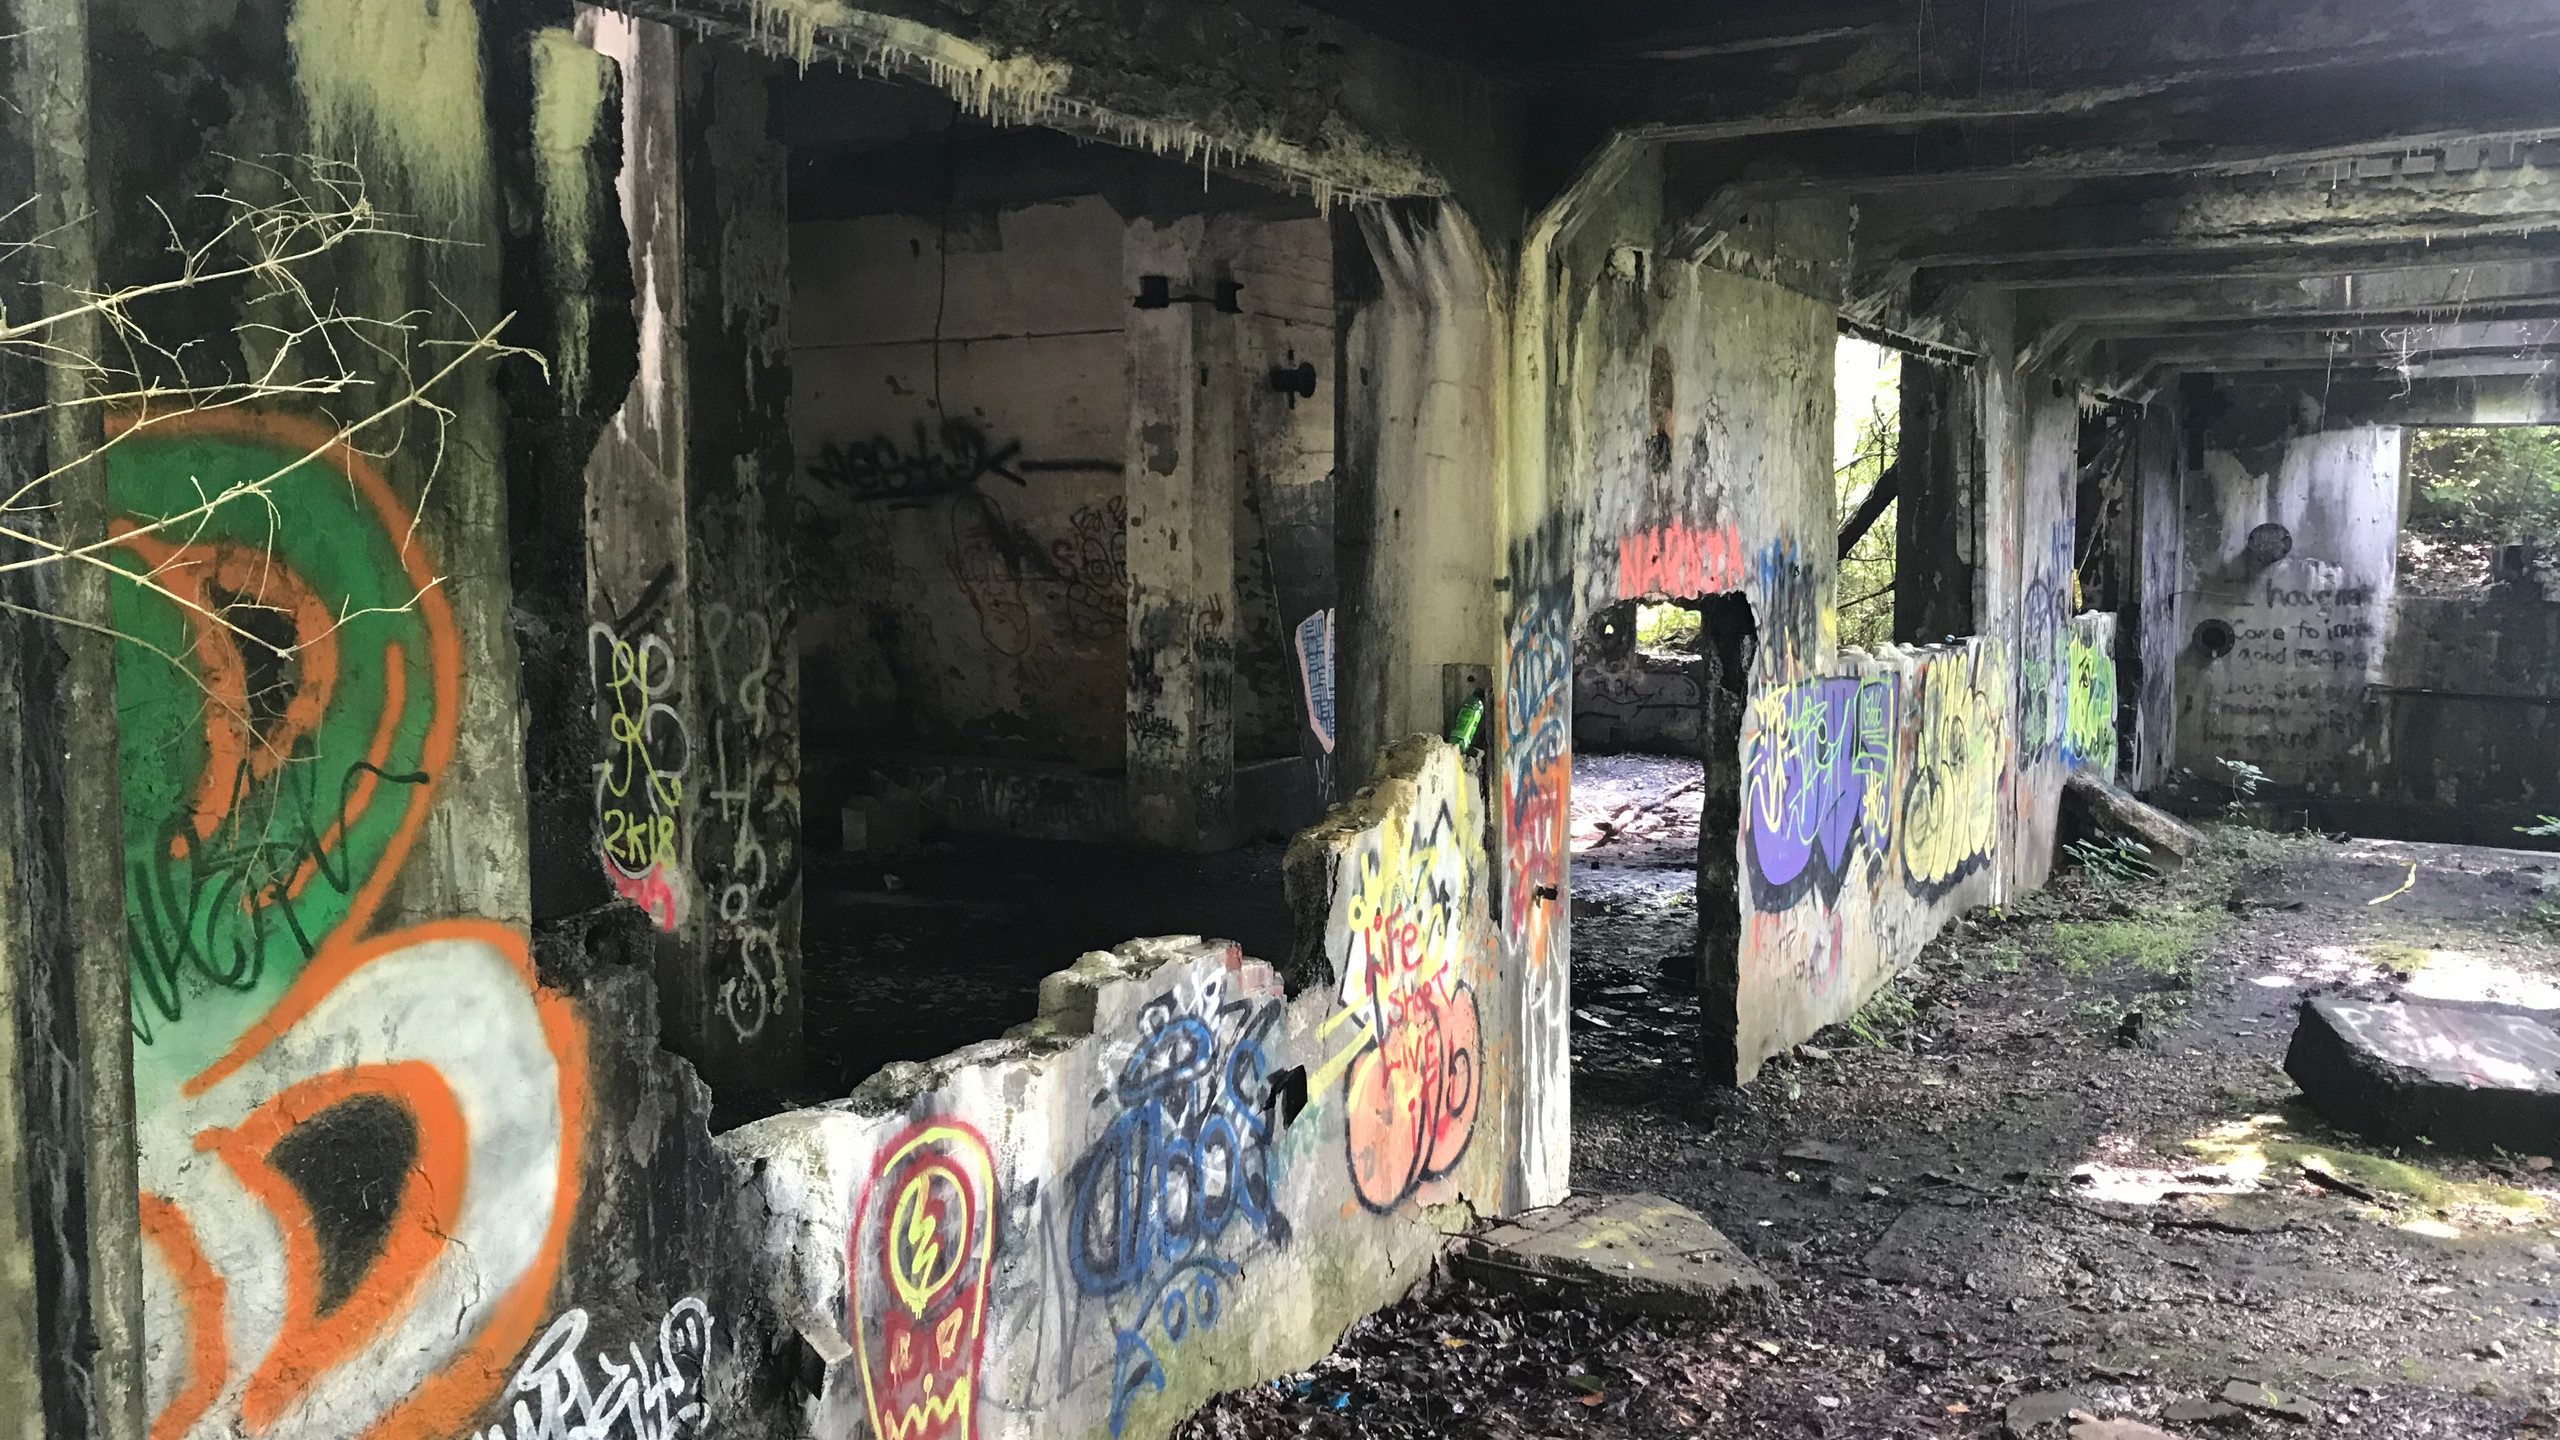 Inside the Abandoned Mine Buildings